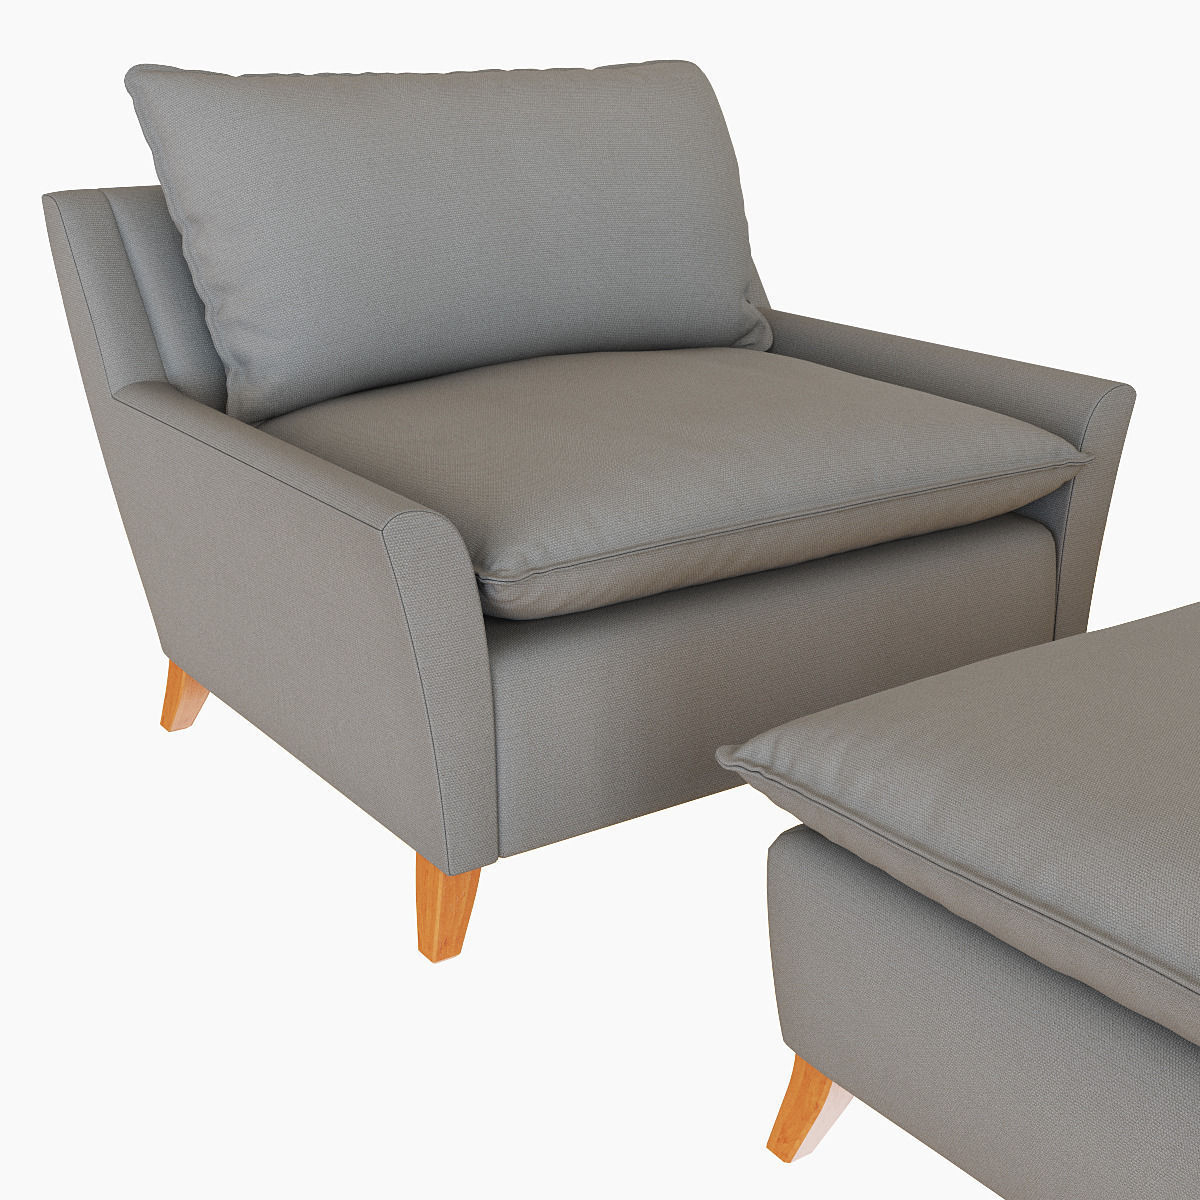 West Elm Bliss Down Filled Chair And A Half 3D Model Max Obj Mtl Fbx For Elm Sofa Chairs (View 15 of 25)